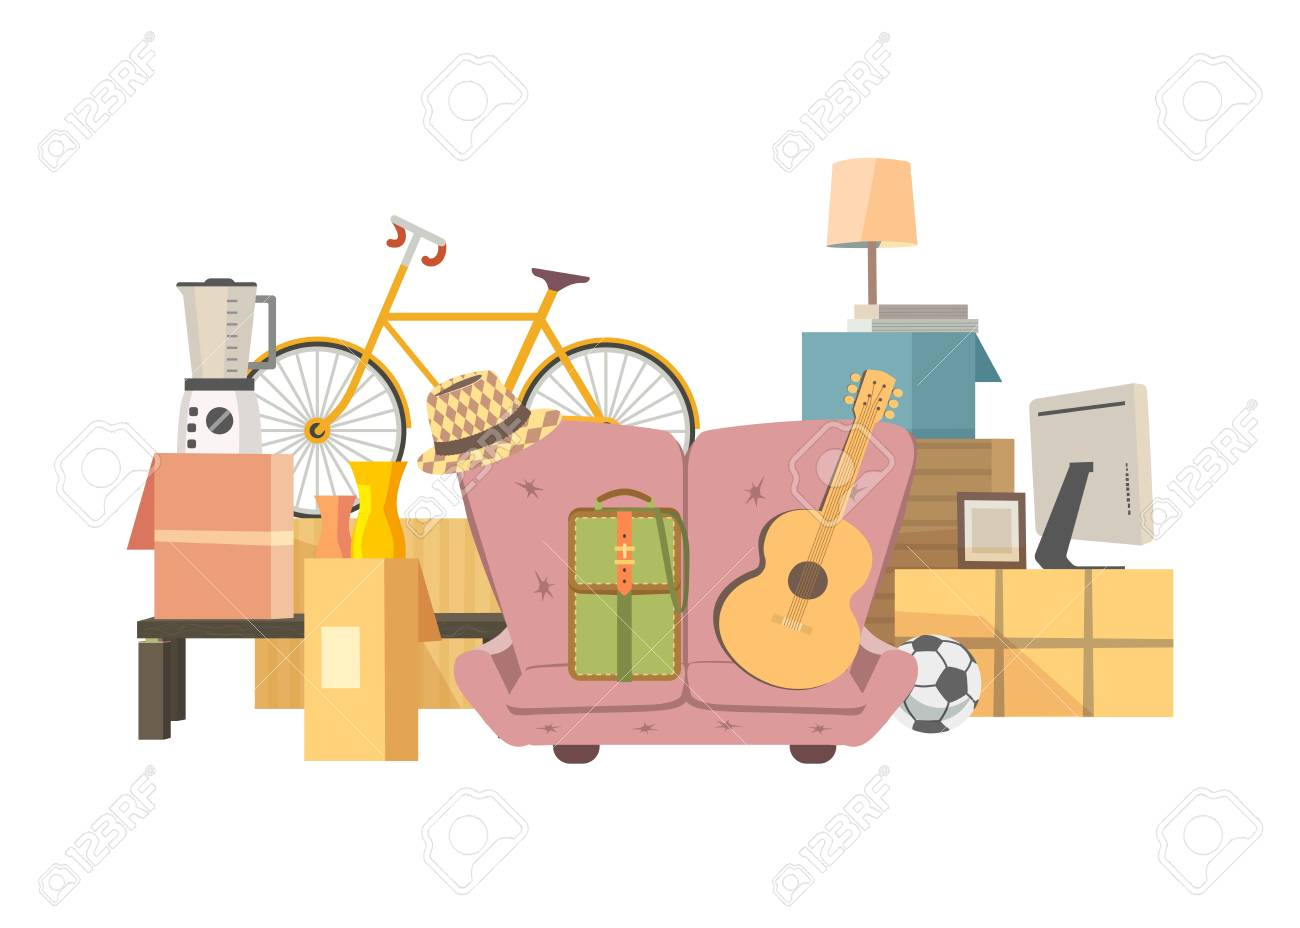 Moving boxes icon  Home change concept  Package to move to new